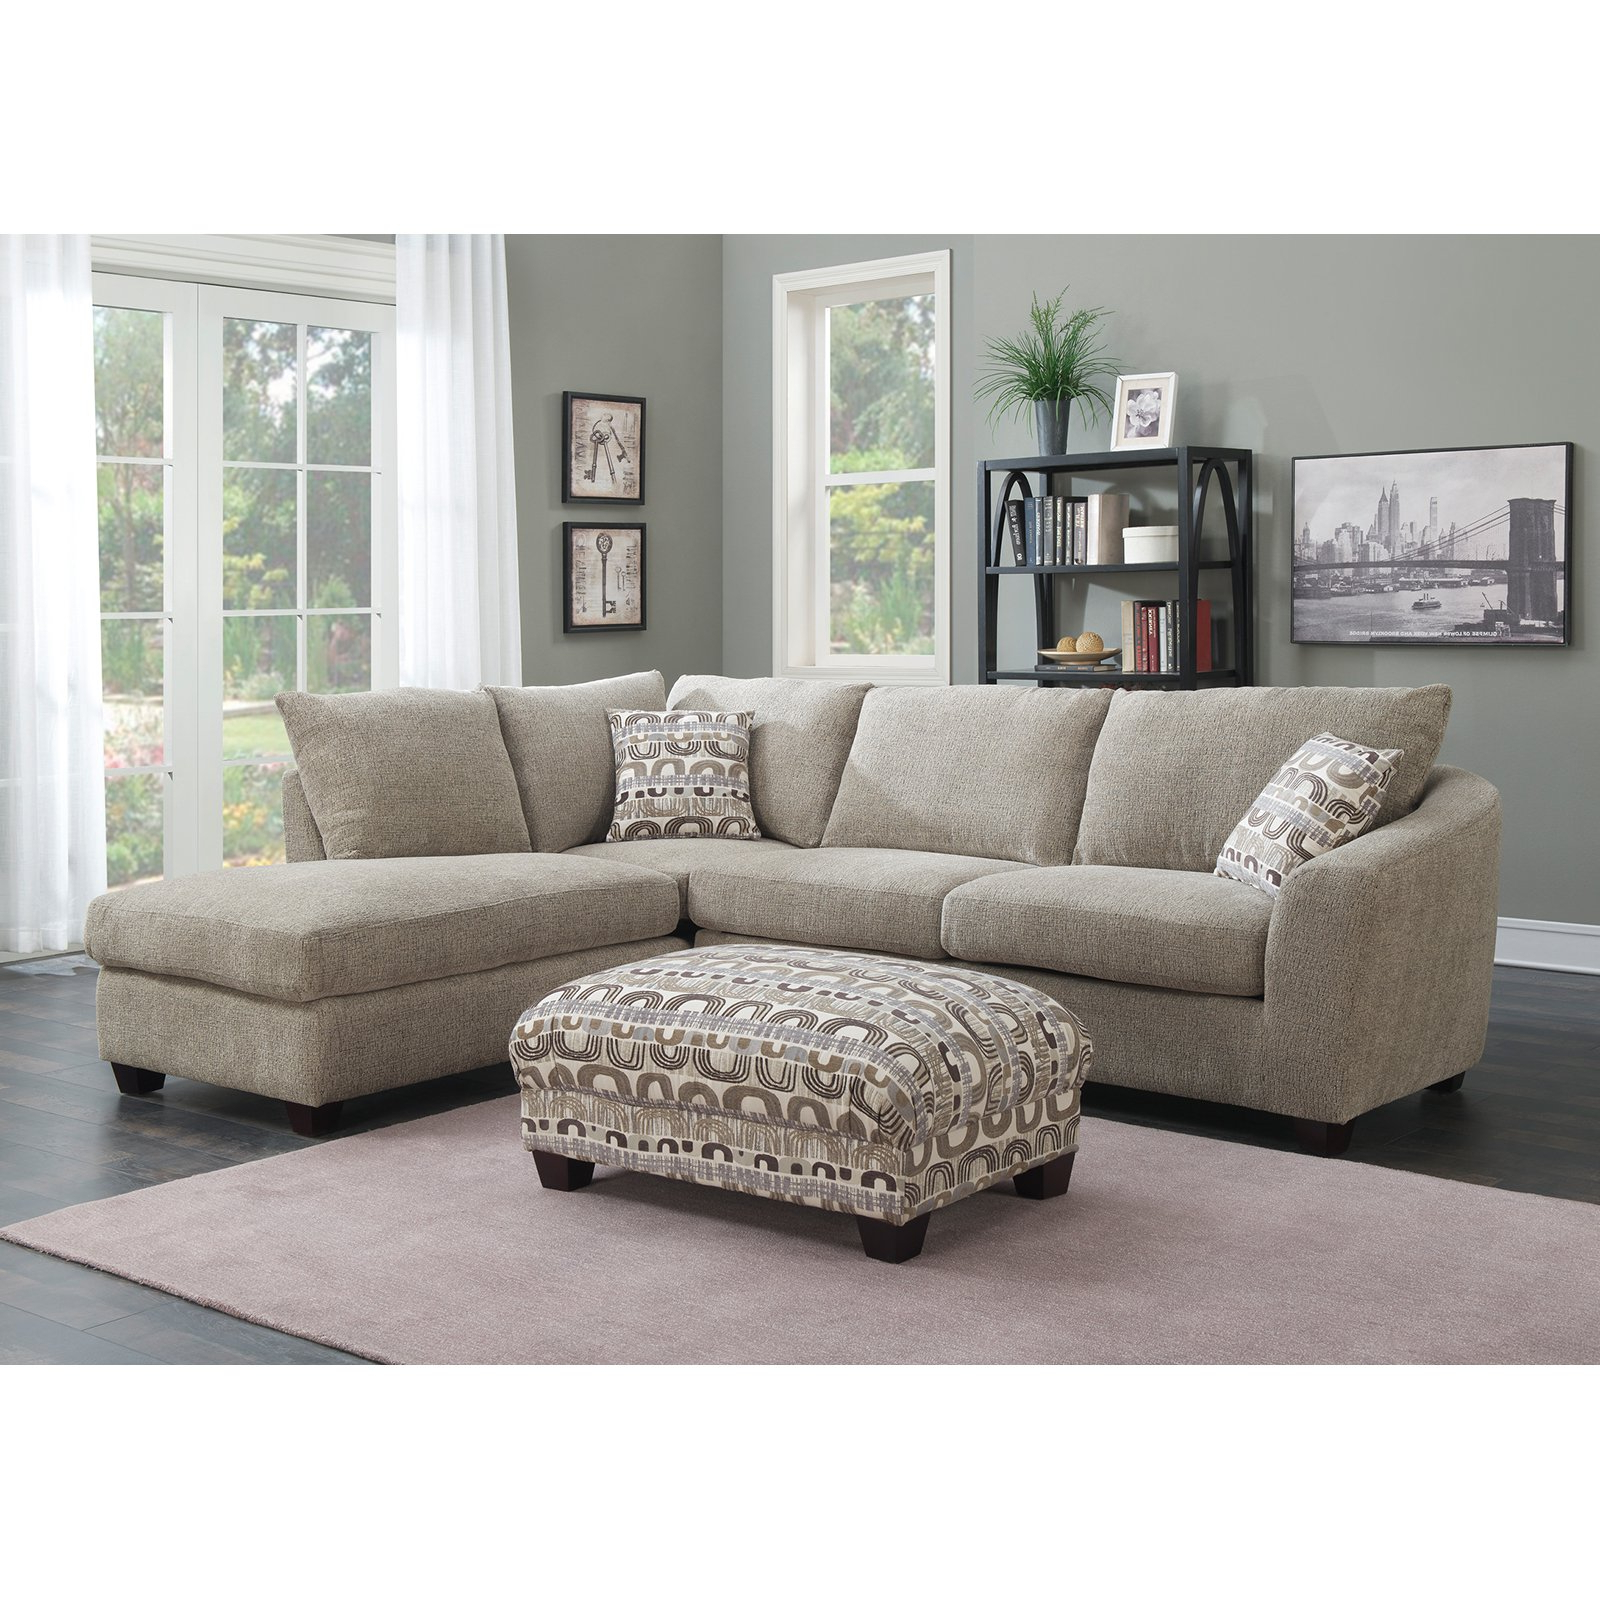 2 Piece Sectional With Chaise – Tidex Within Famous Delano 2 Piece Sectionals With Laf Oversized Chaise (View 1 of 20)